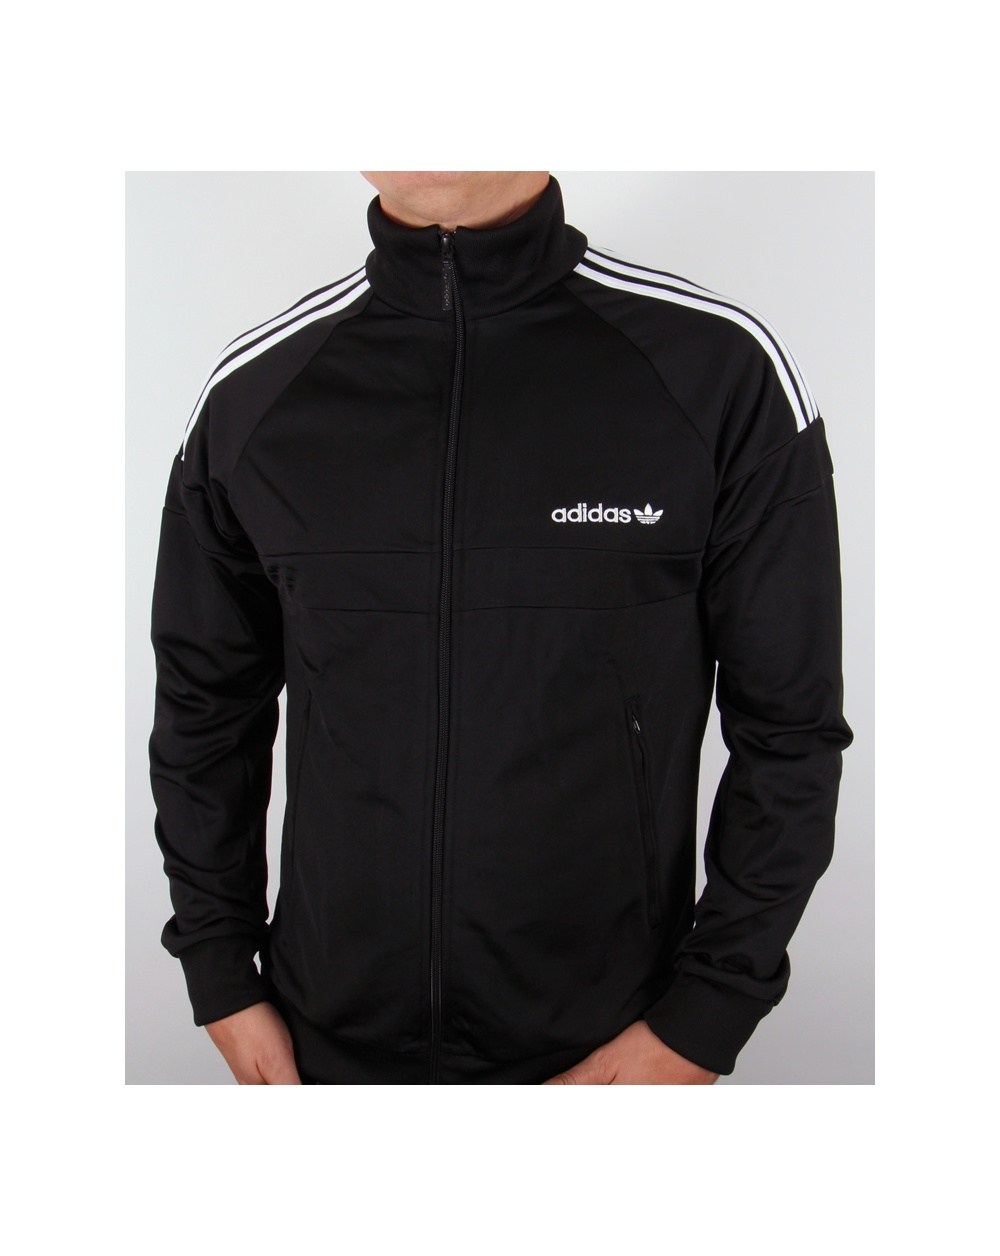 Adidas Originals Itasca Track Top Black Jacket Tracksuit Mens